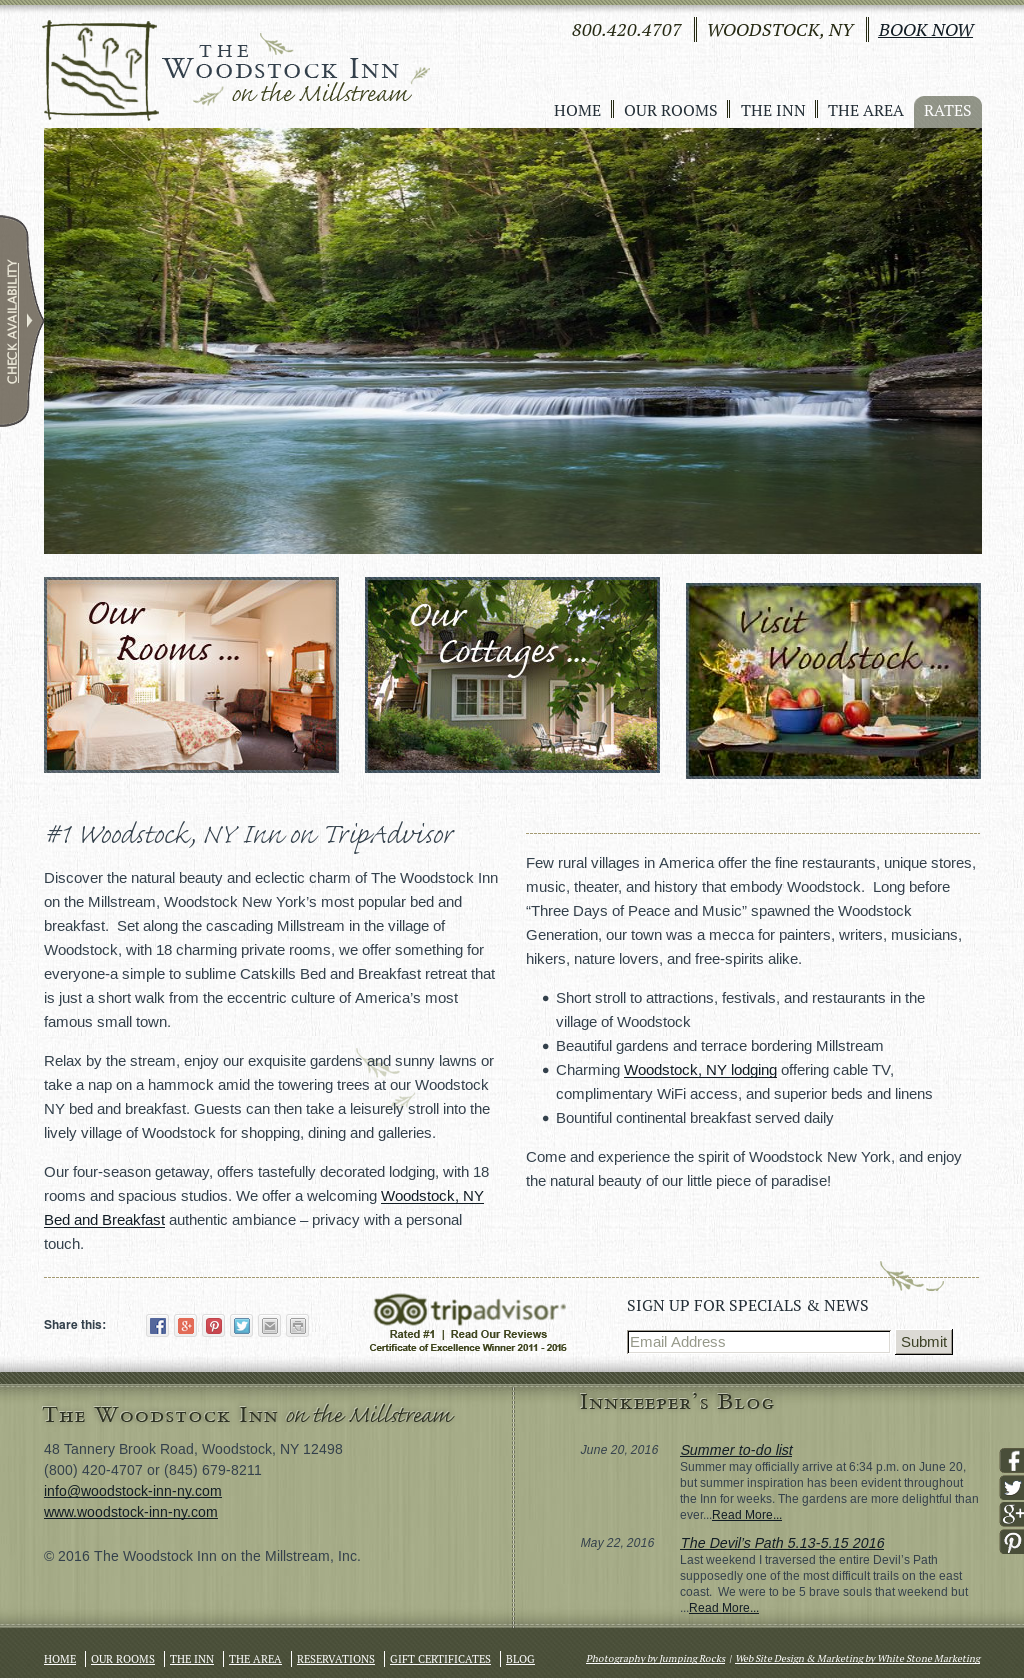 Woodstock Inn on the Millstream Competitors, Revenue and Employees